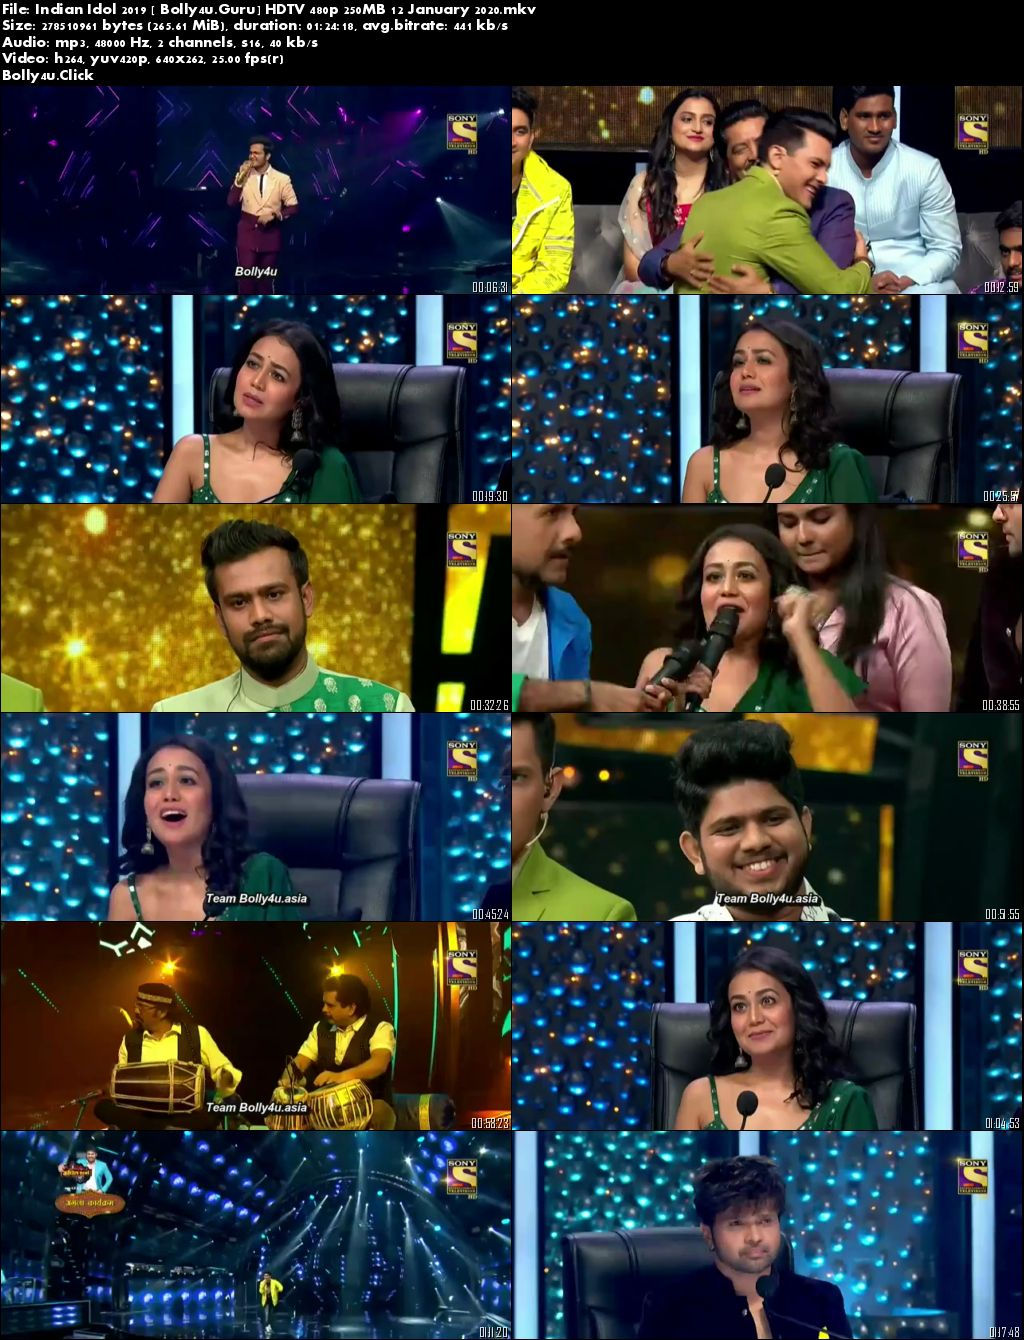 Indian Idol 2019 HDTV 480p 250MB 12 January 2020 Download